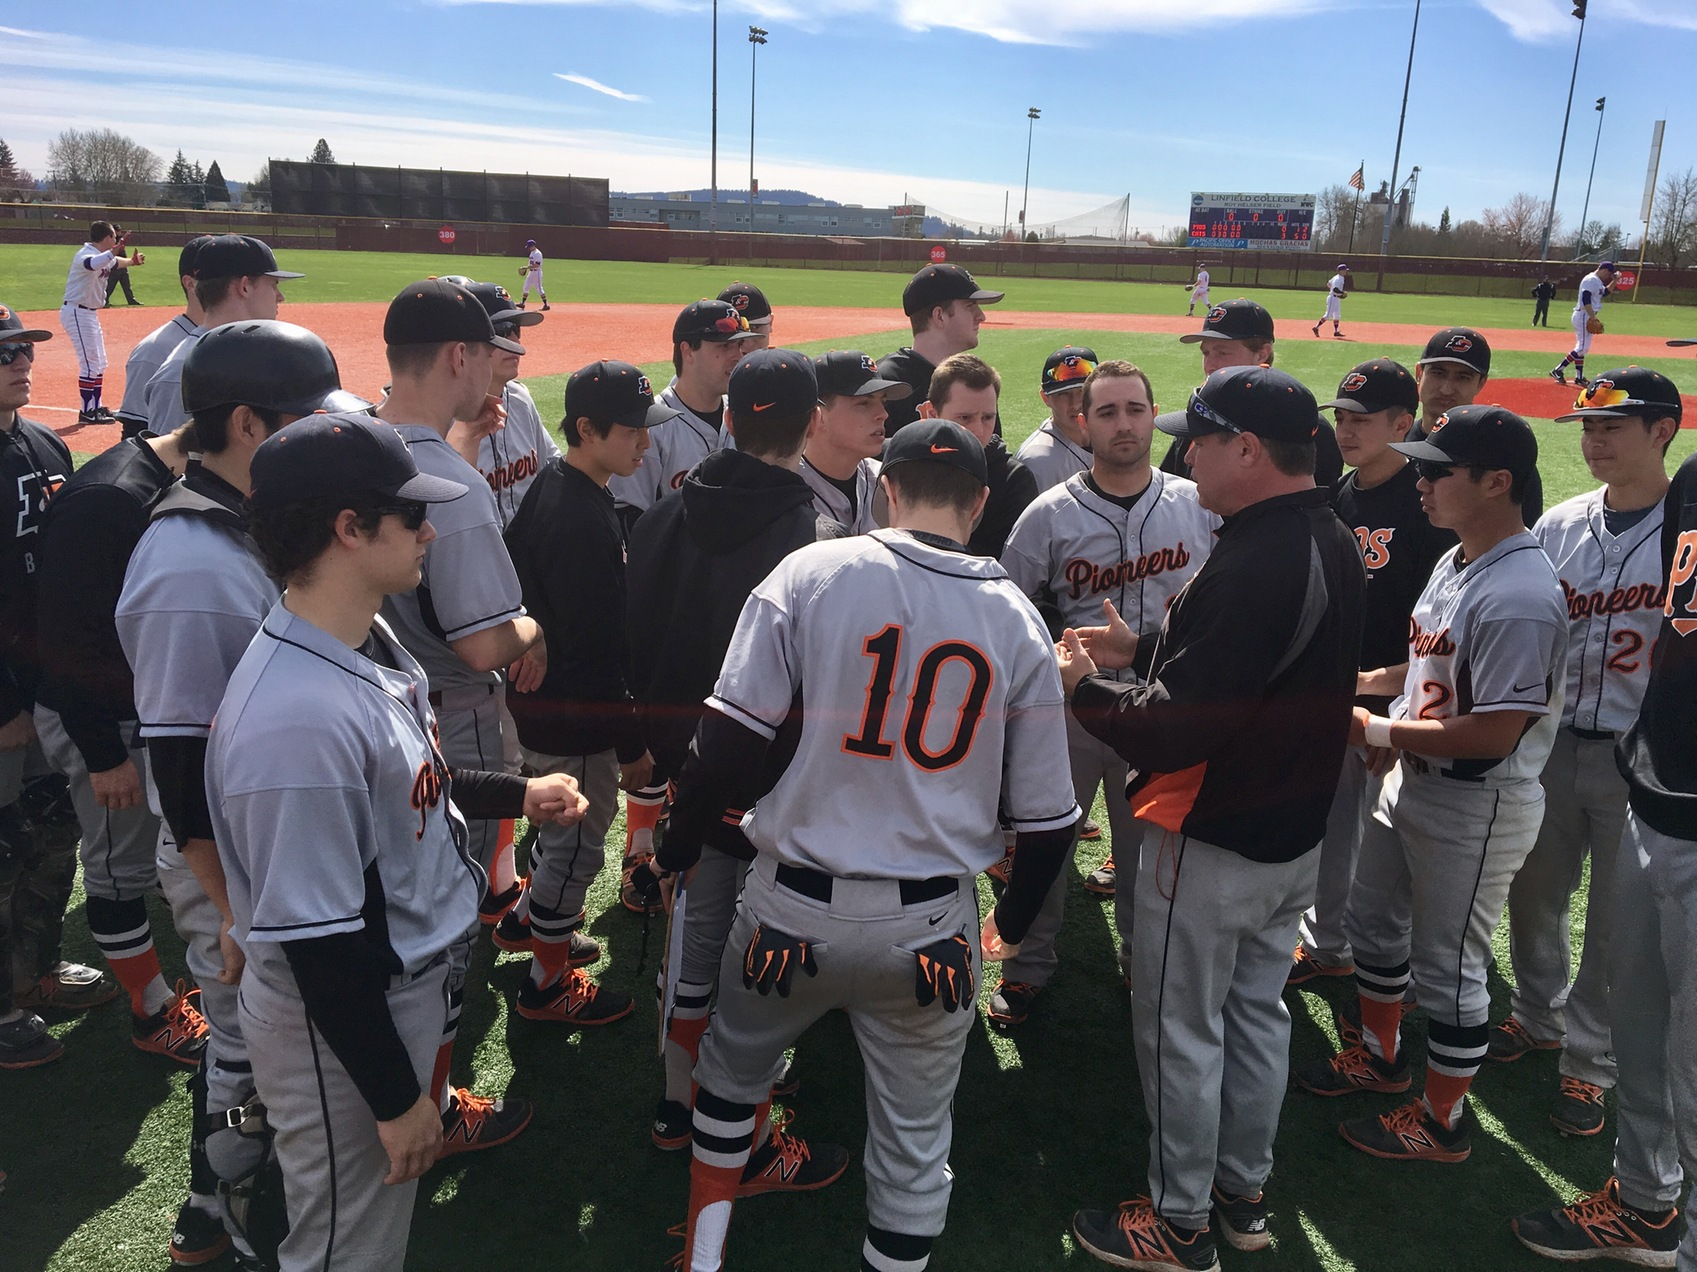 Pios drop first two game to Wildcats